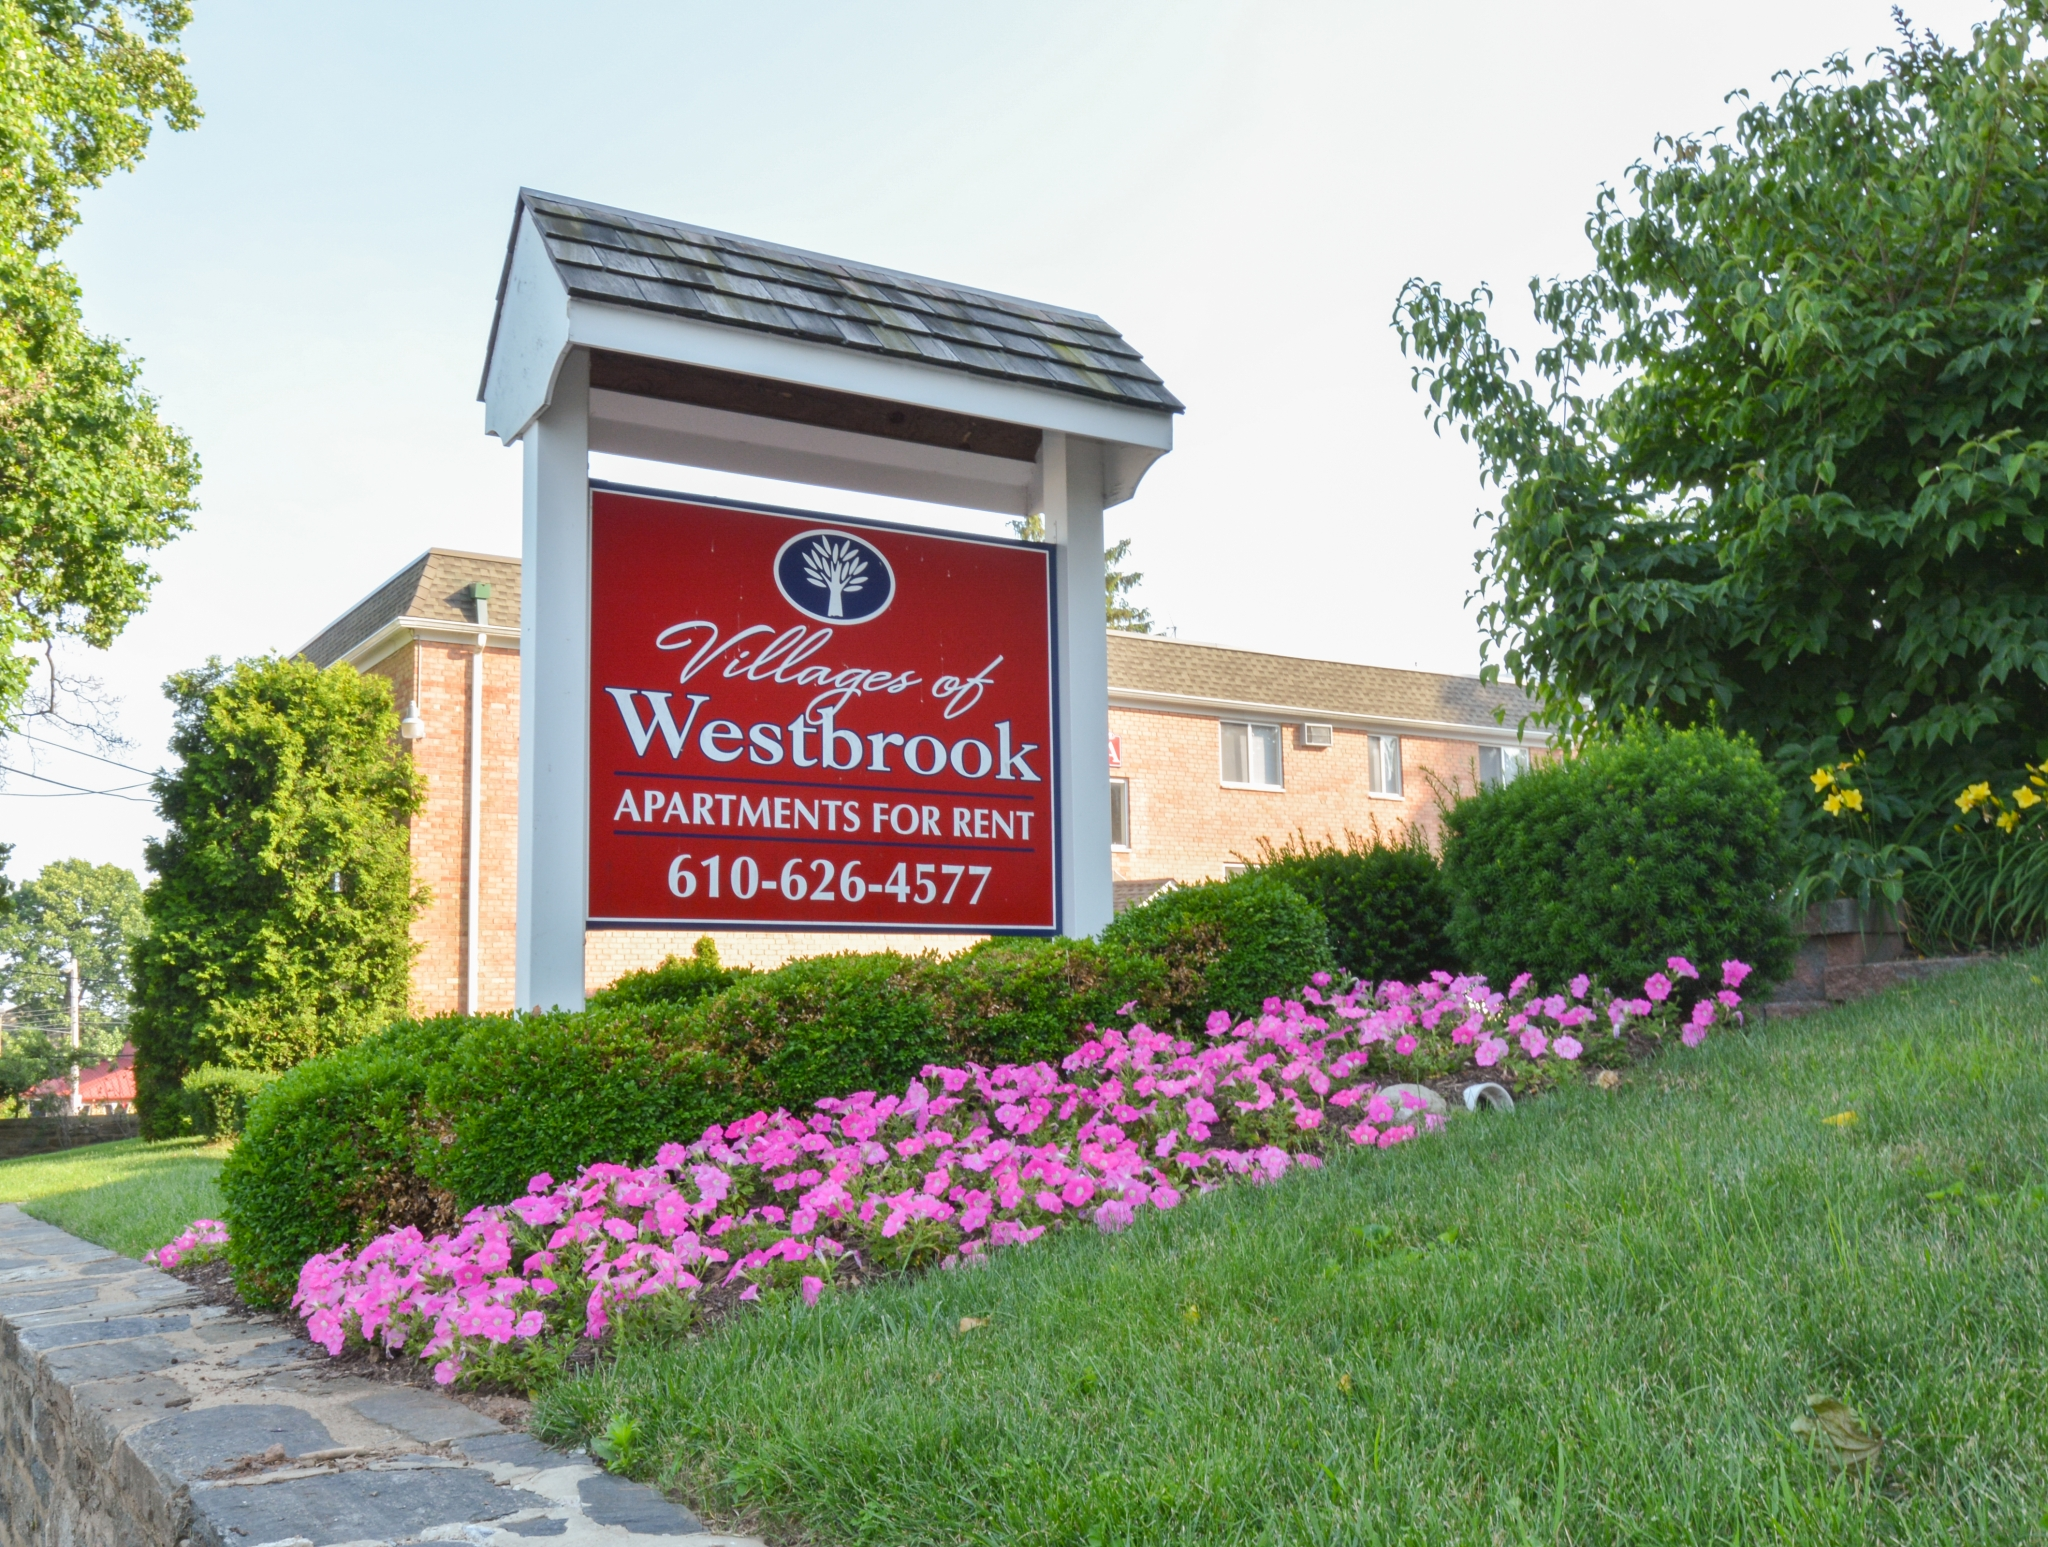 The Villages of Westbrook Apartments image 0